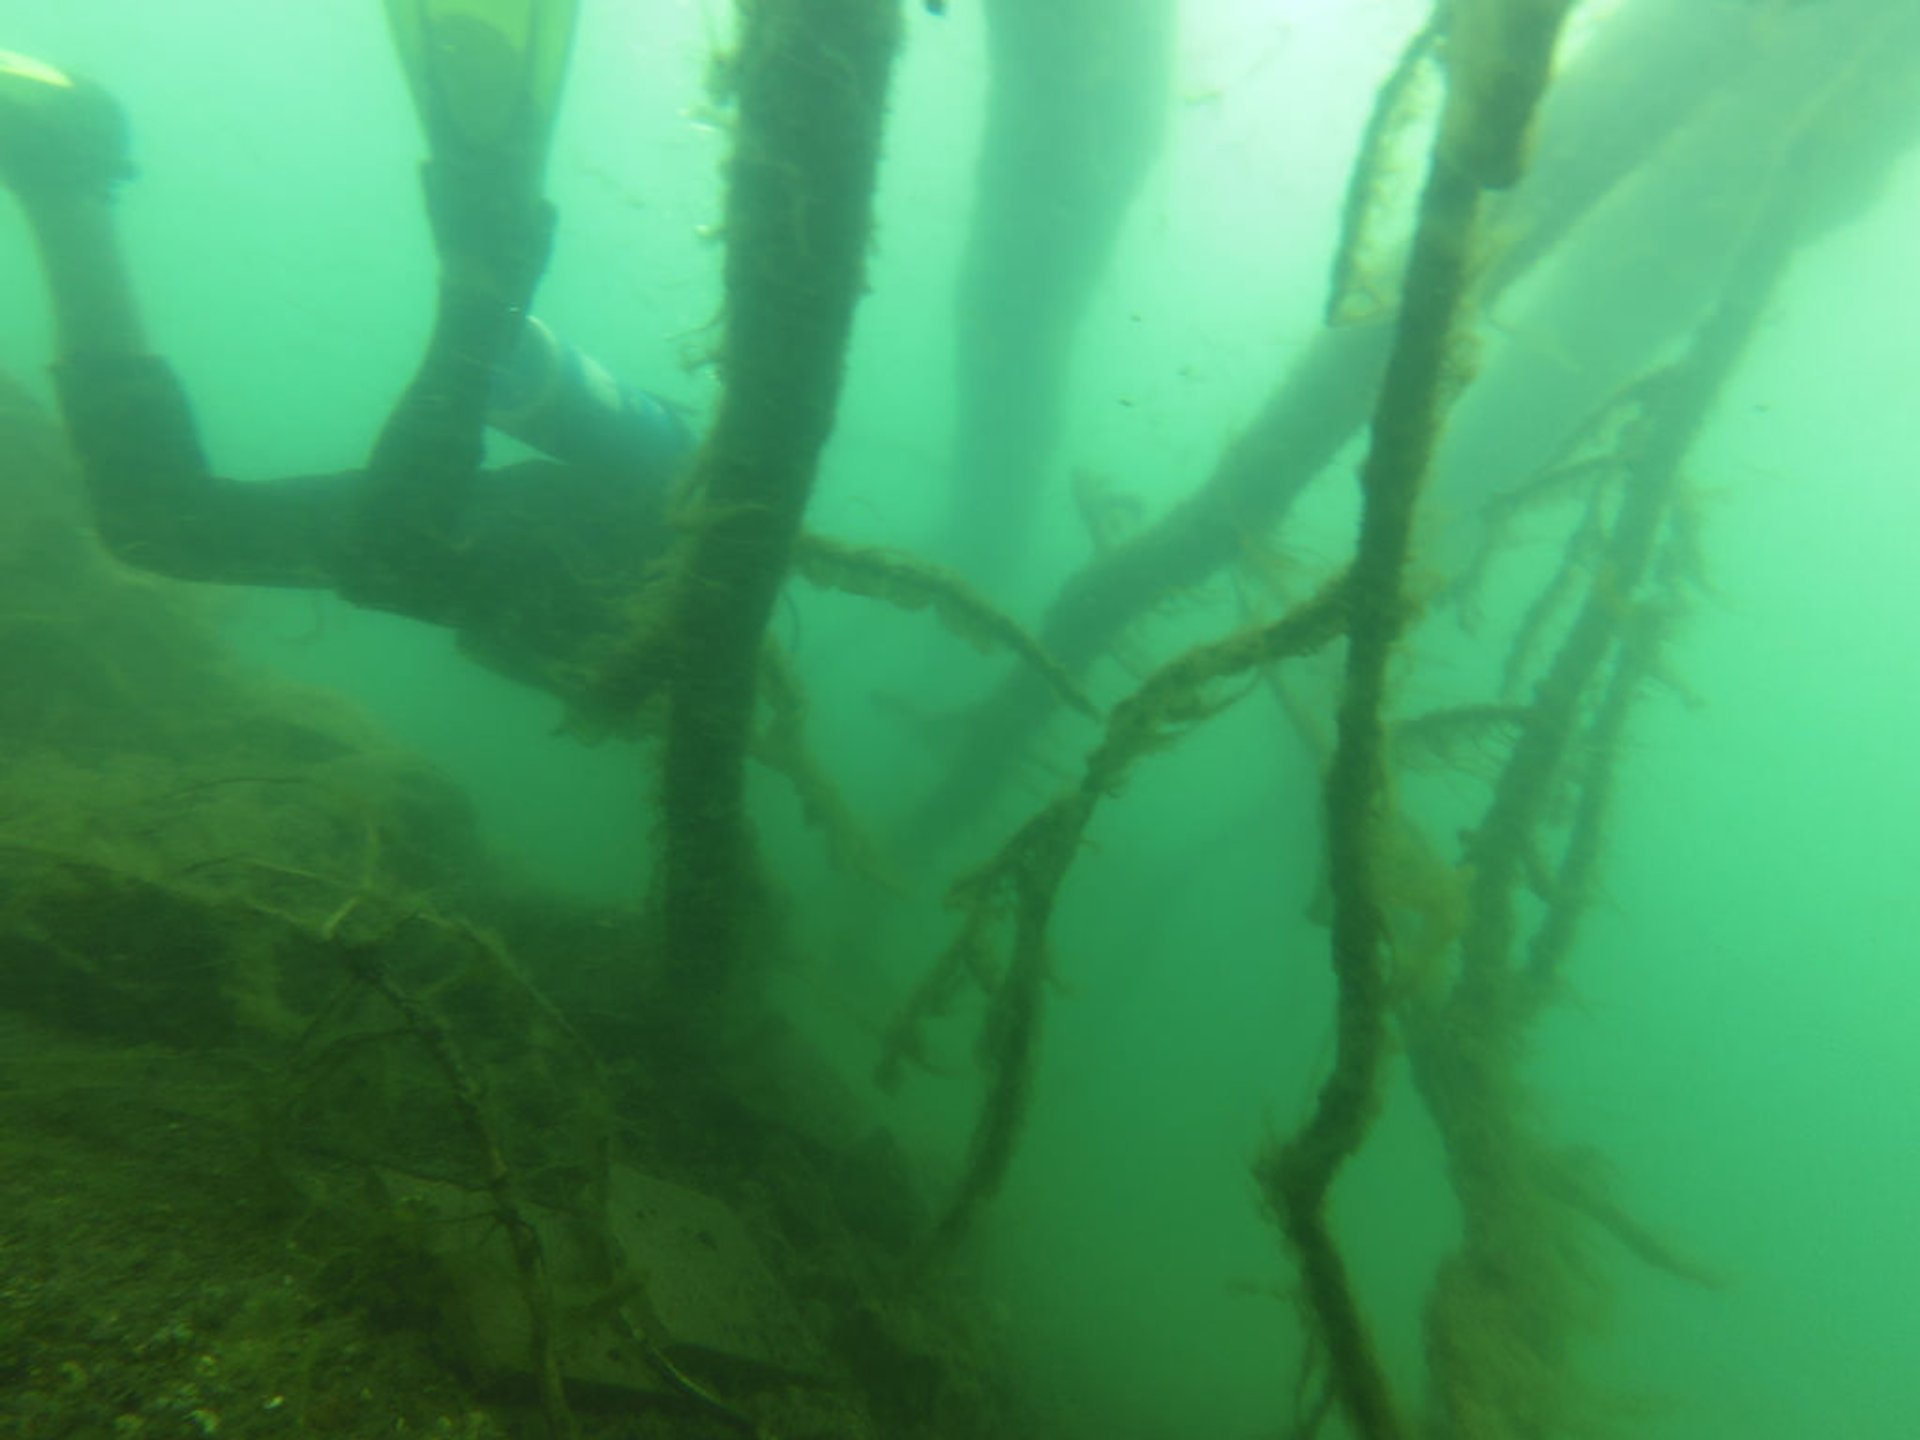 Making a way through some sunken tree branches in the Lake Atitlán 2020